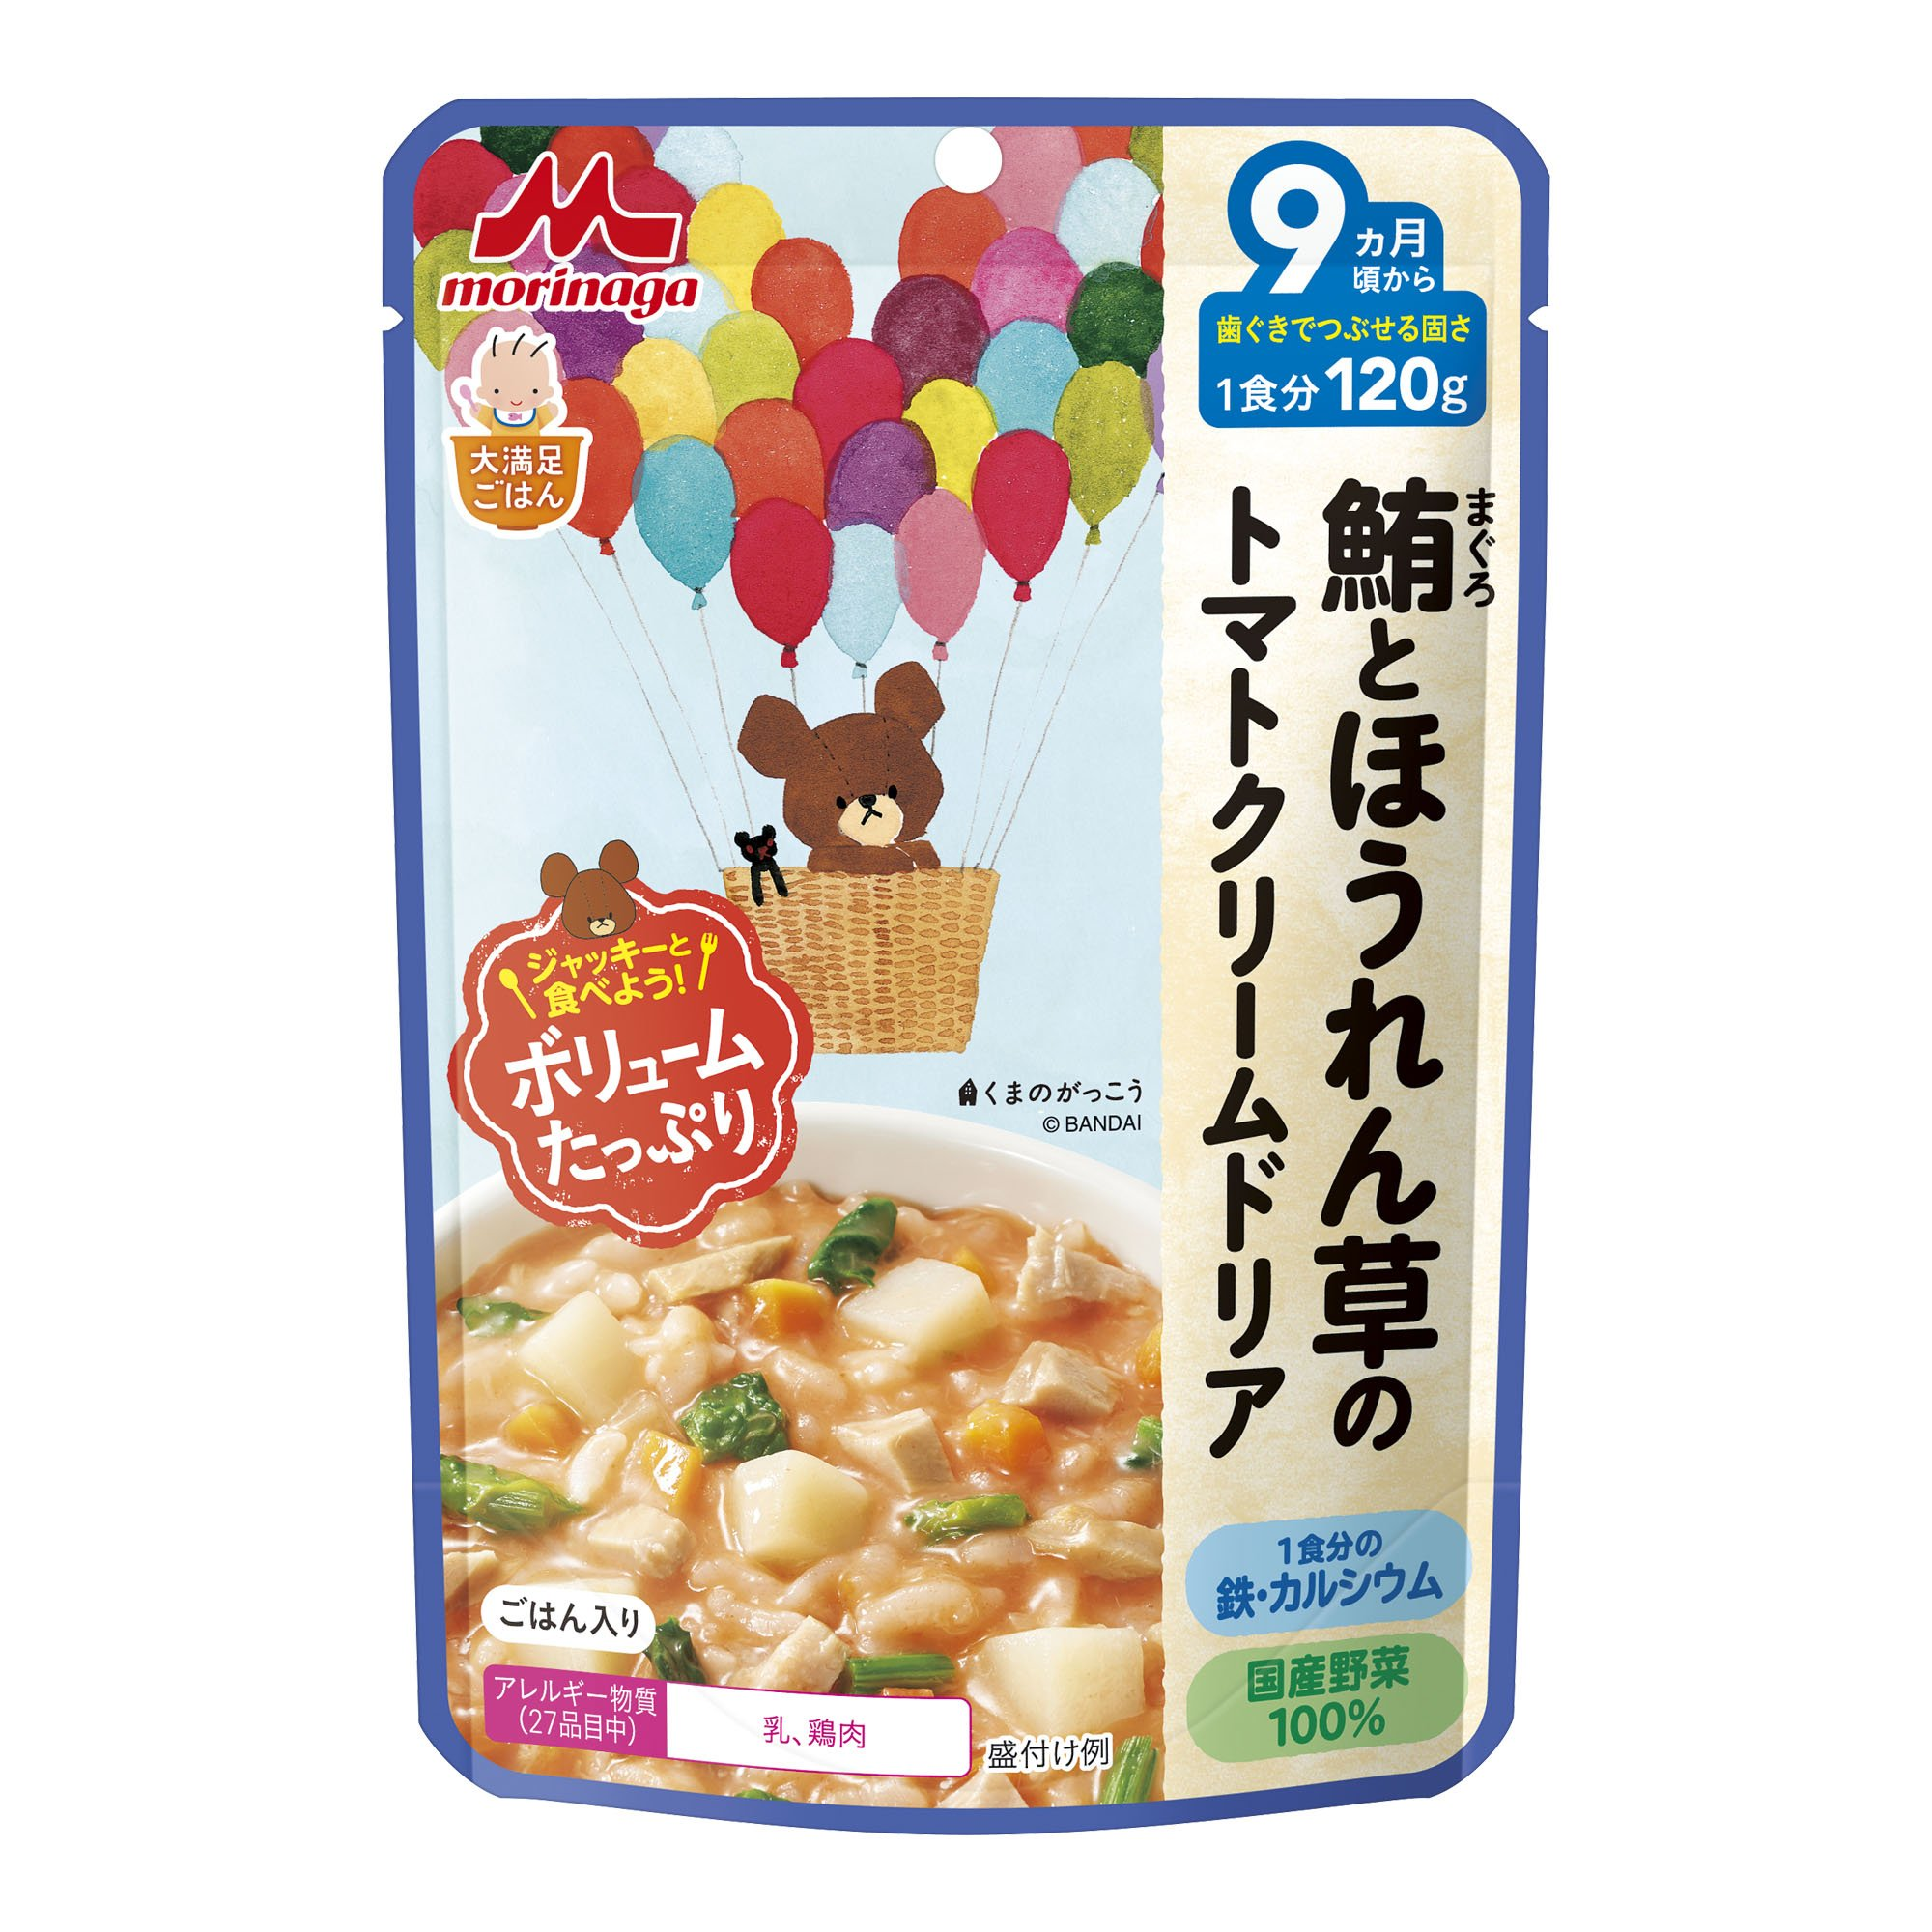 120gX12 pieces firmness one meal that Tsubuseru in Morinaga very happy rice tuna and spinach tomato cream Doria nine months gums from around May